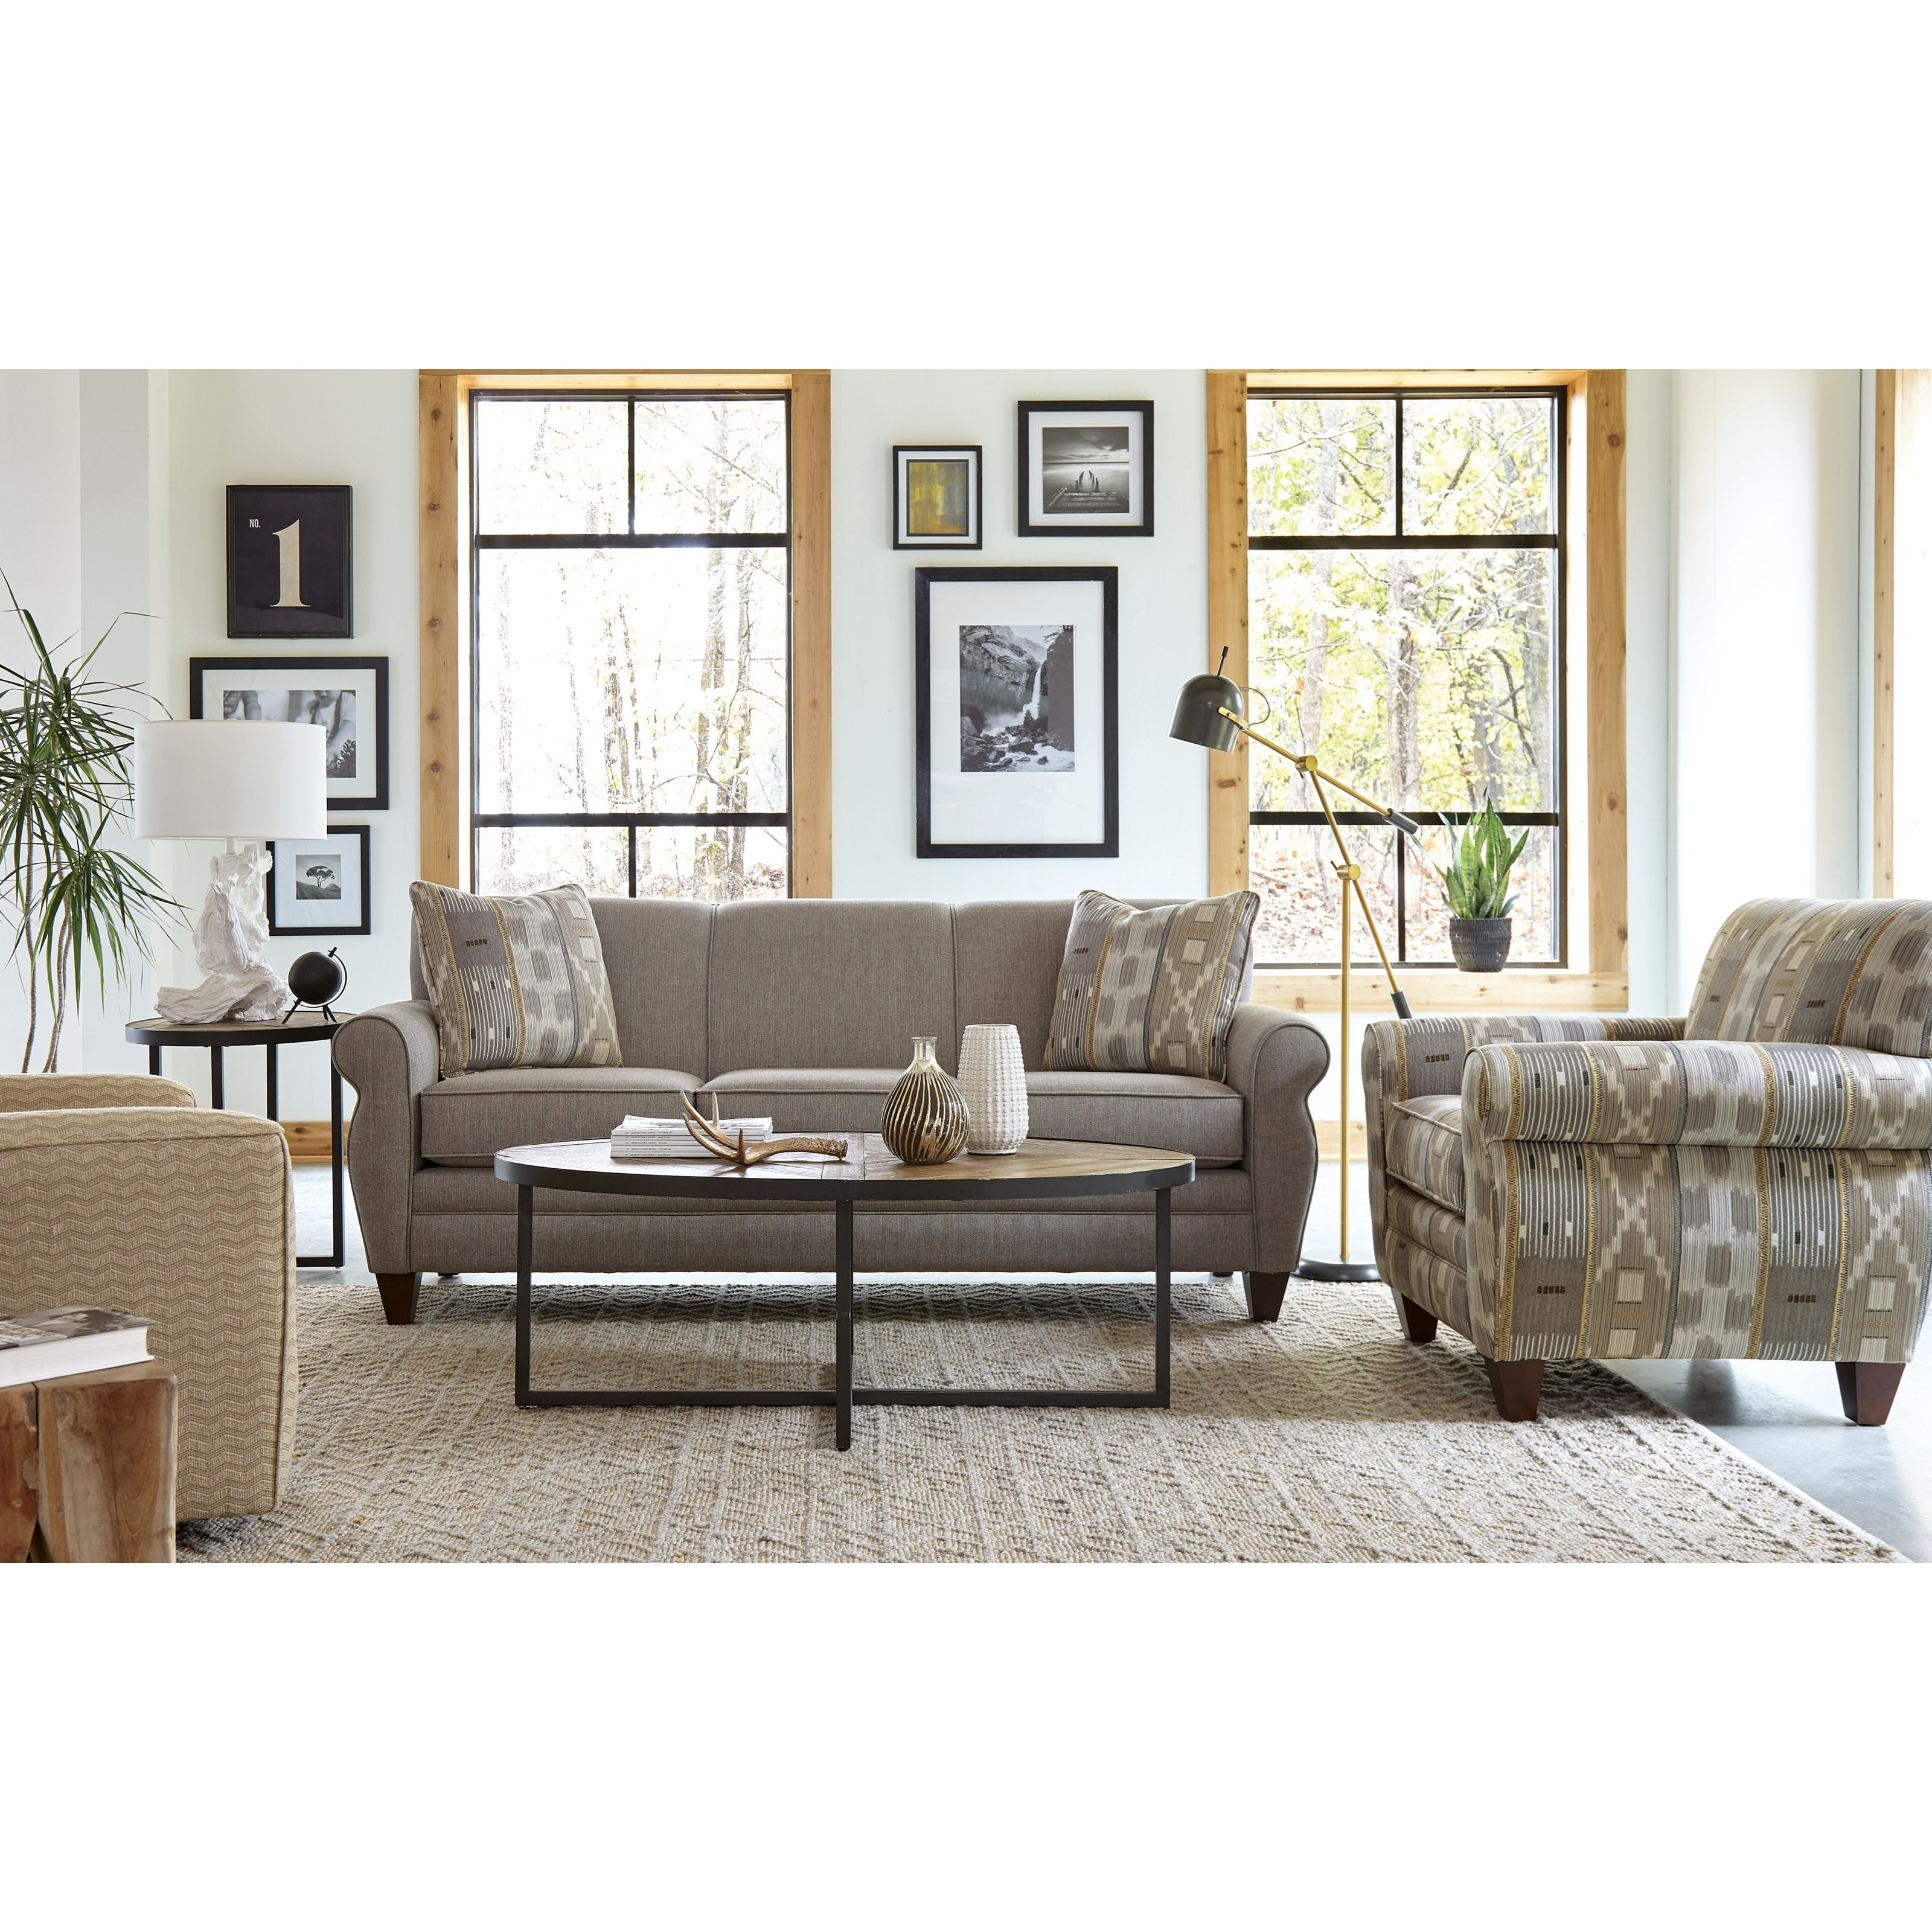 Craftmaster 7388 Transitional Stationary Sofa With Rolled